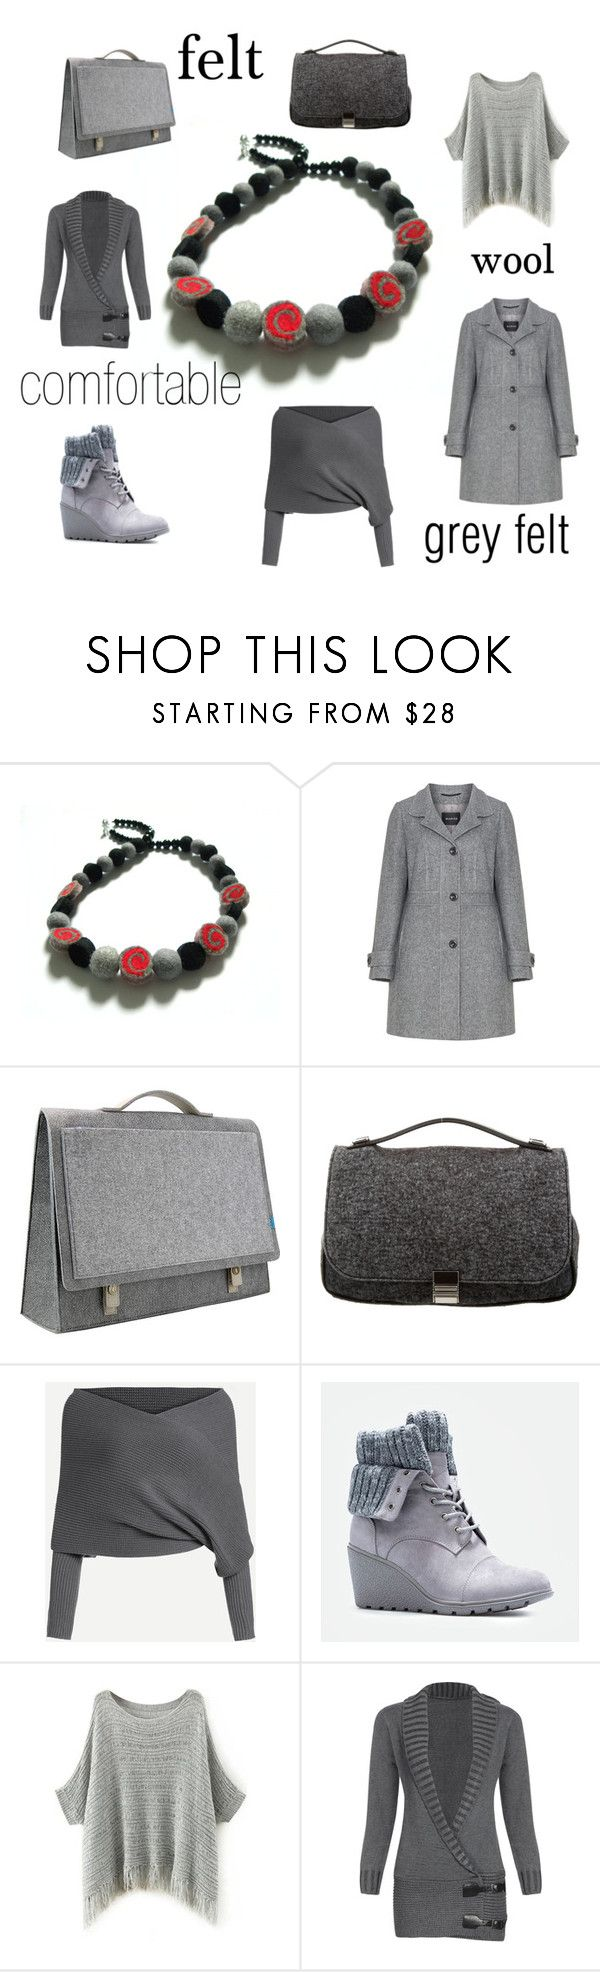 Grey felt and wool by marudafelting on Polyvore featuring moda, MANISA, JustFab, Mad Rabbit Kicking Tiger, Proenza Schouler and plus size clothing